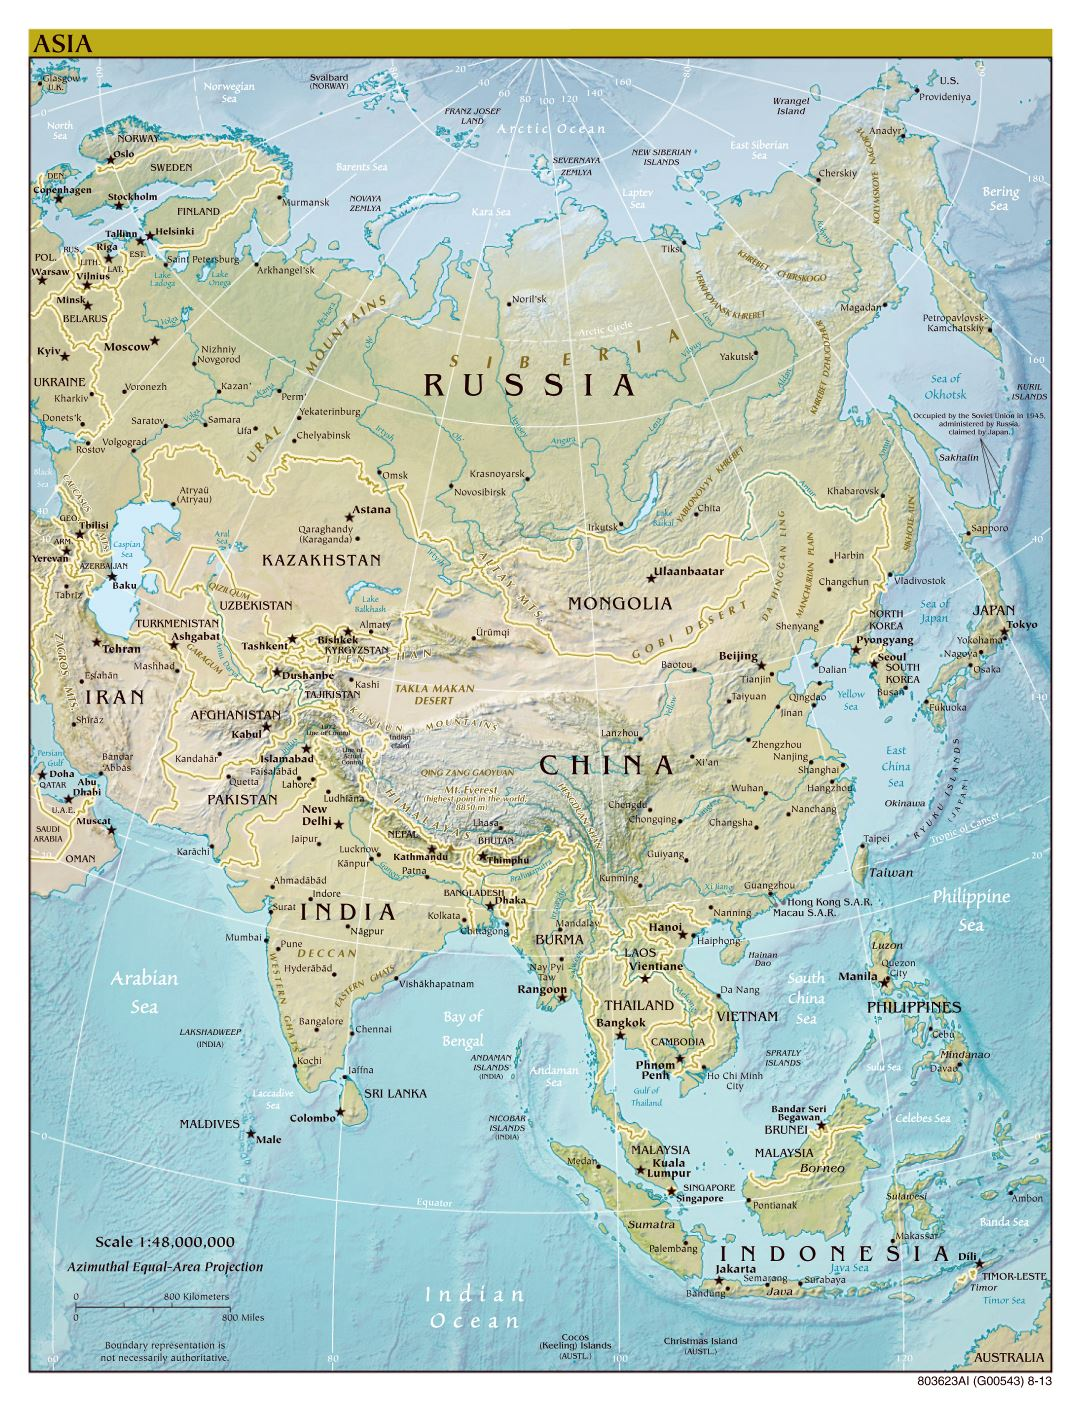 Large scale political map of Asia with relief, major cities and capitals - 2013